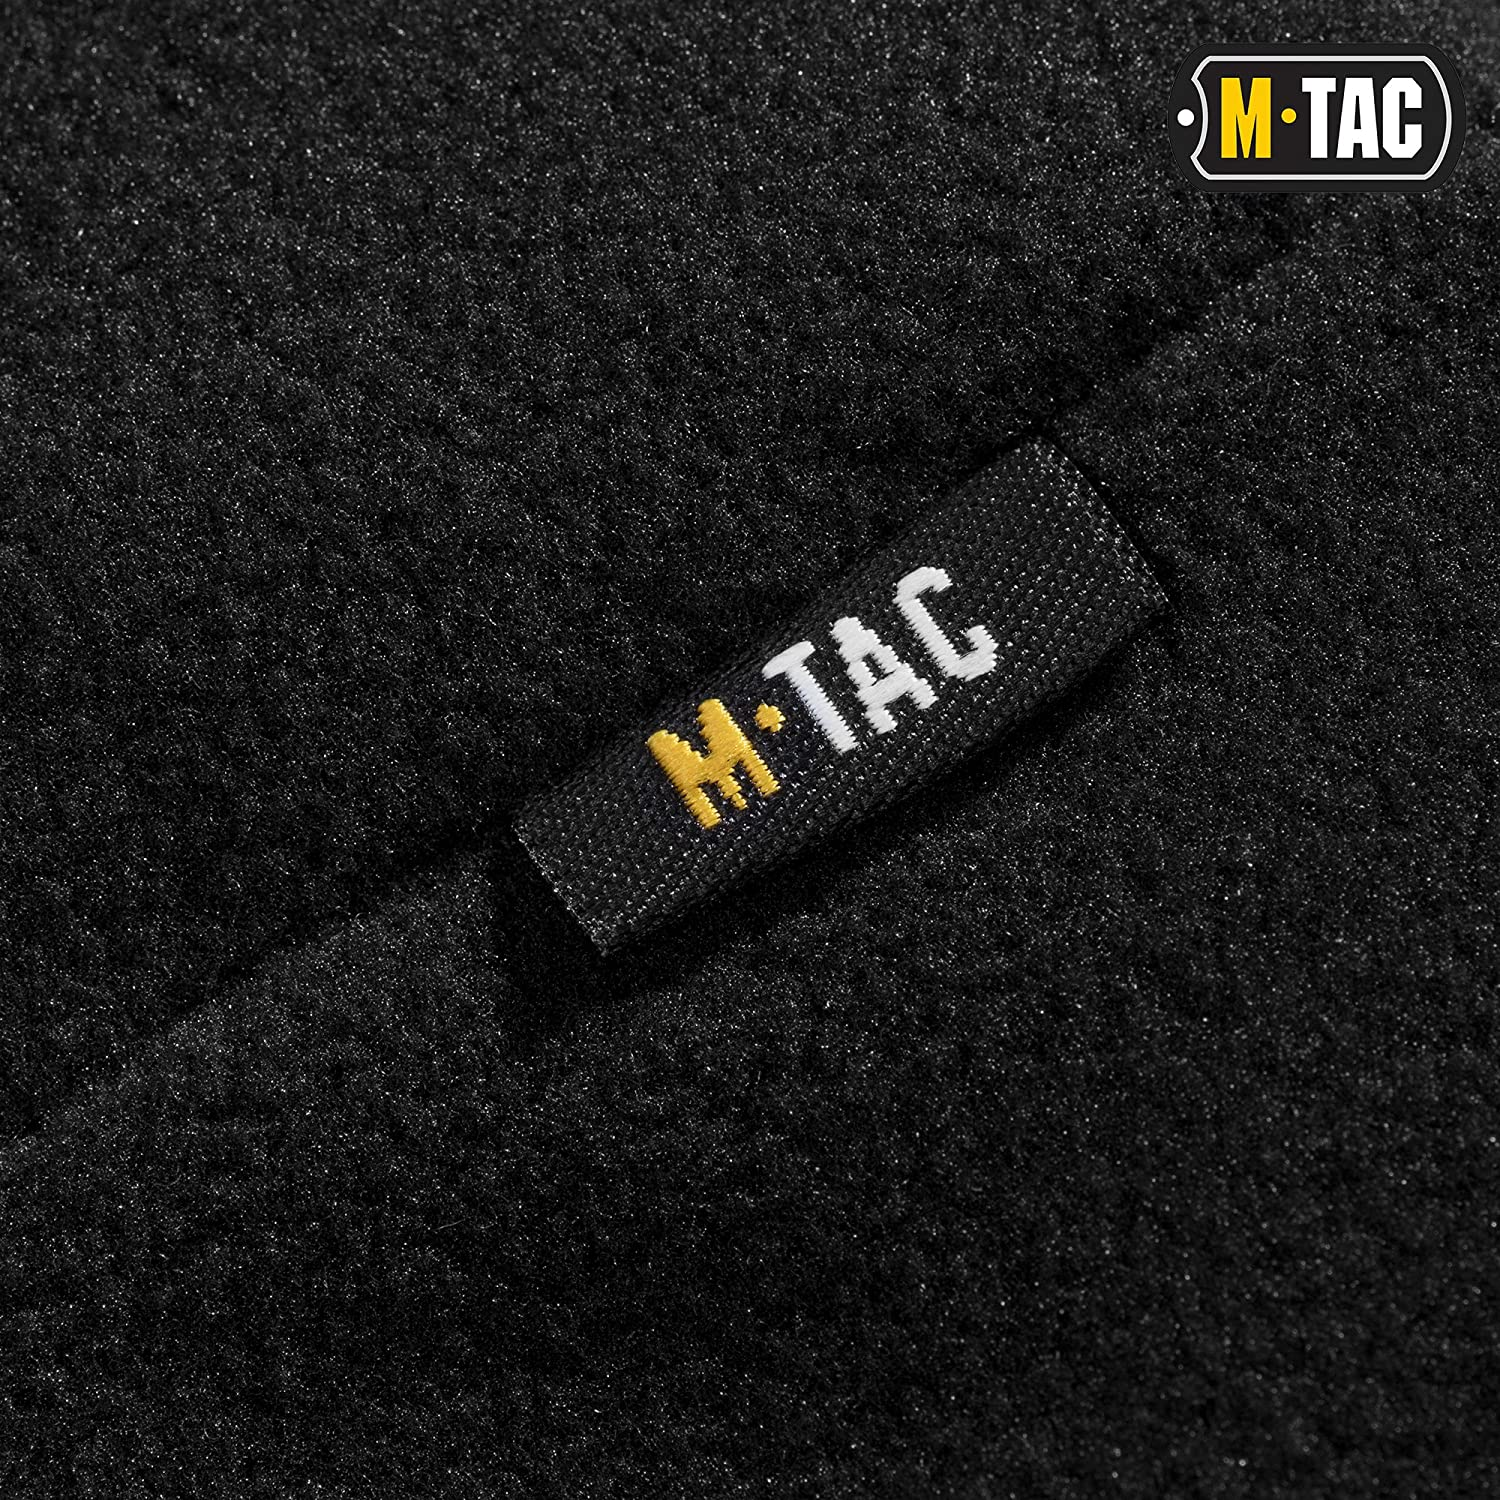 M-Tac Neck Warmer Fleece 260 Gaiter Heavyweight Winter Head Scarf Face Mask